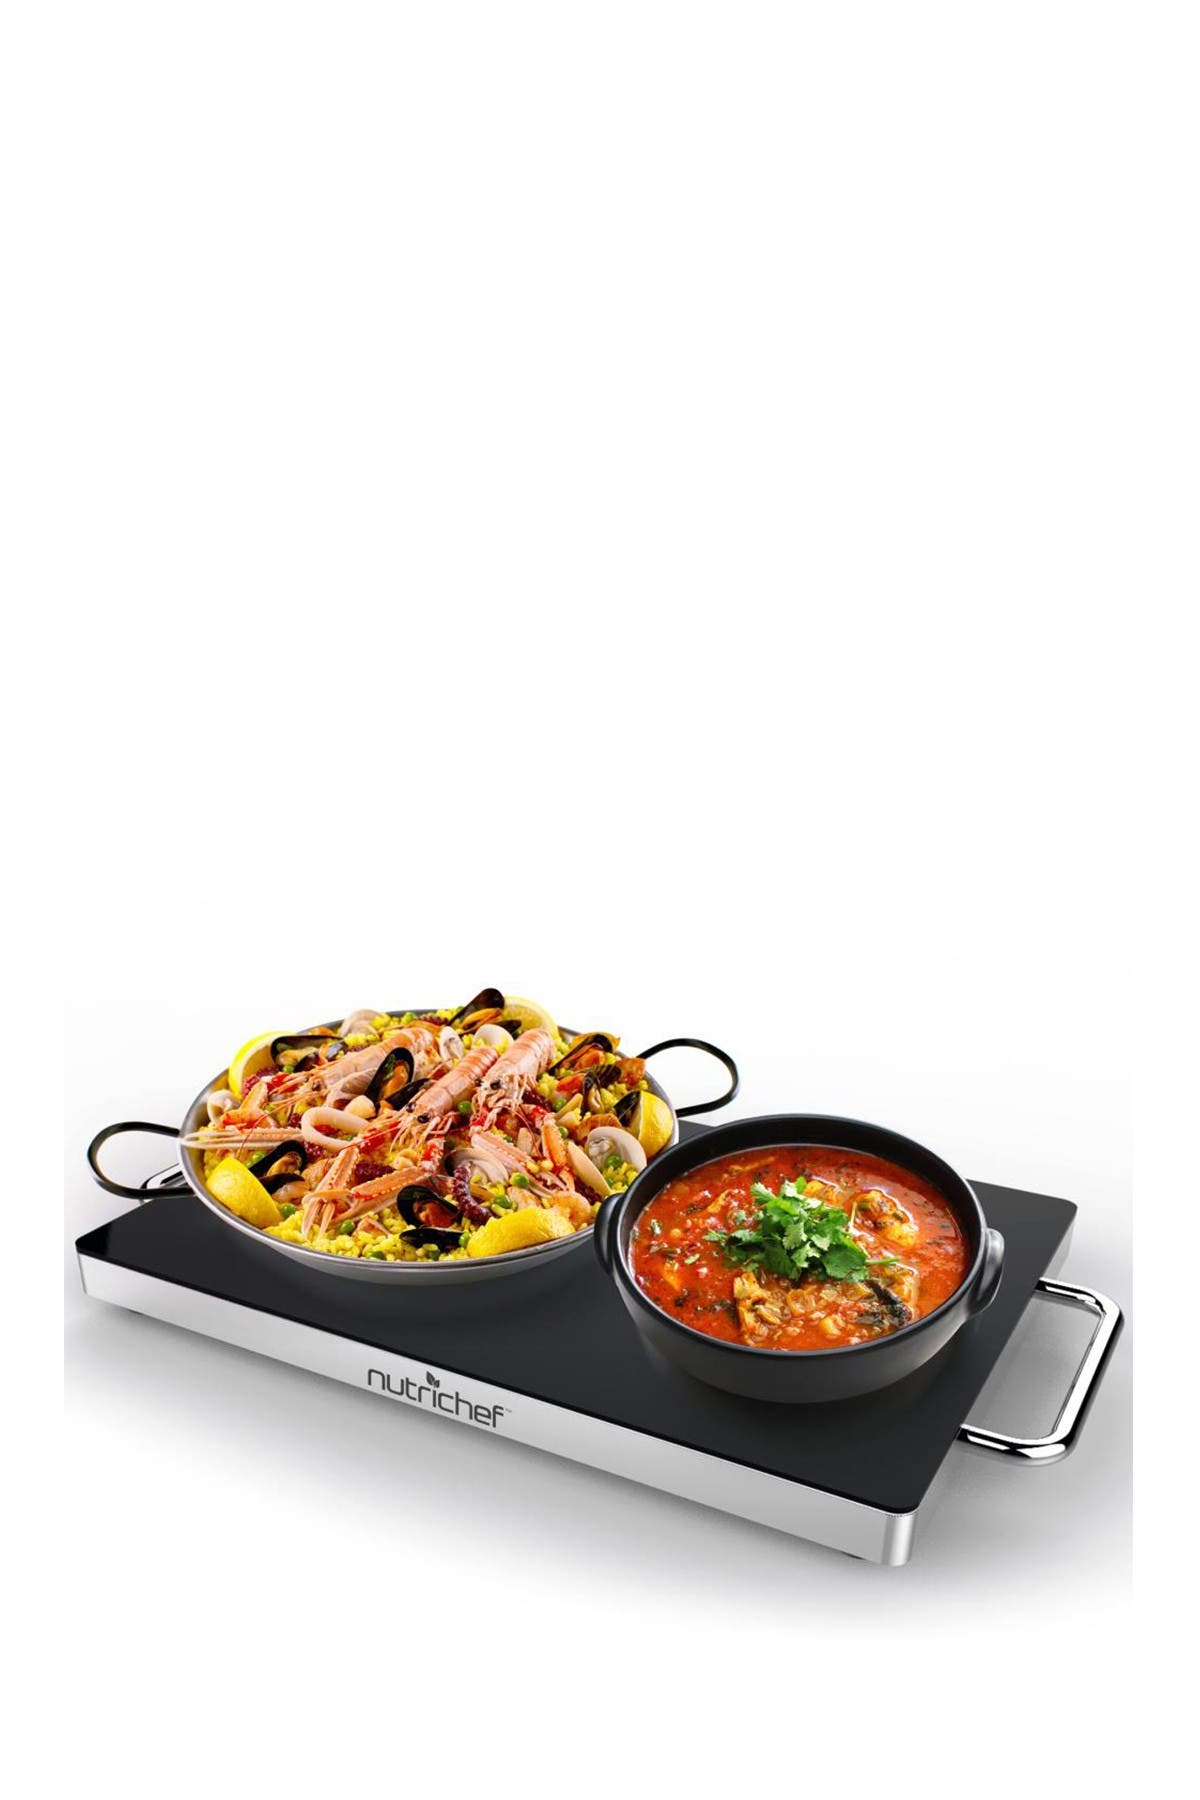 Image of NutriChef Electric Warming Tray & Food Warmer